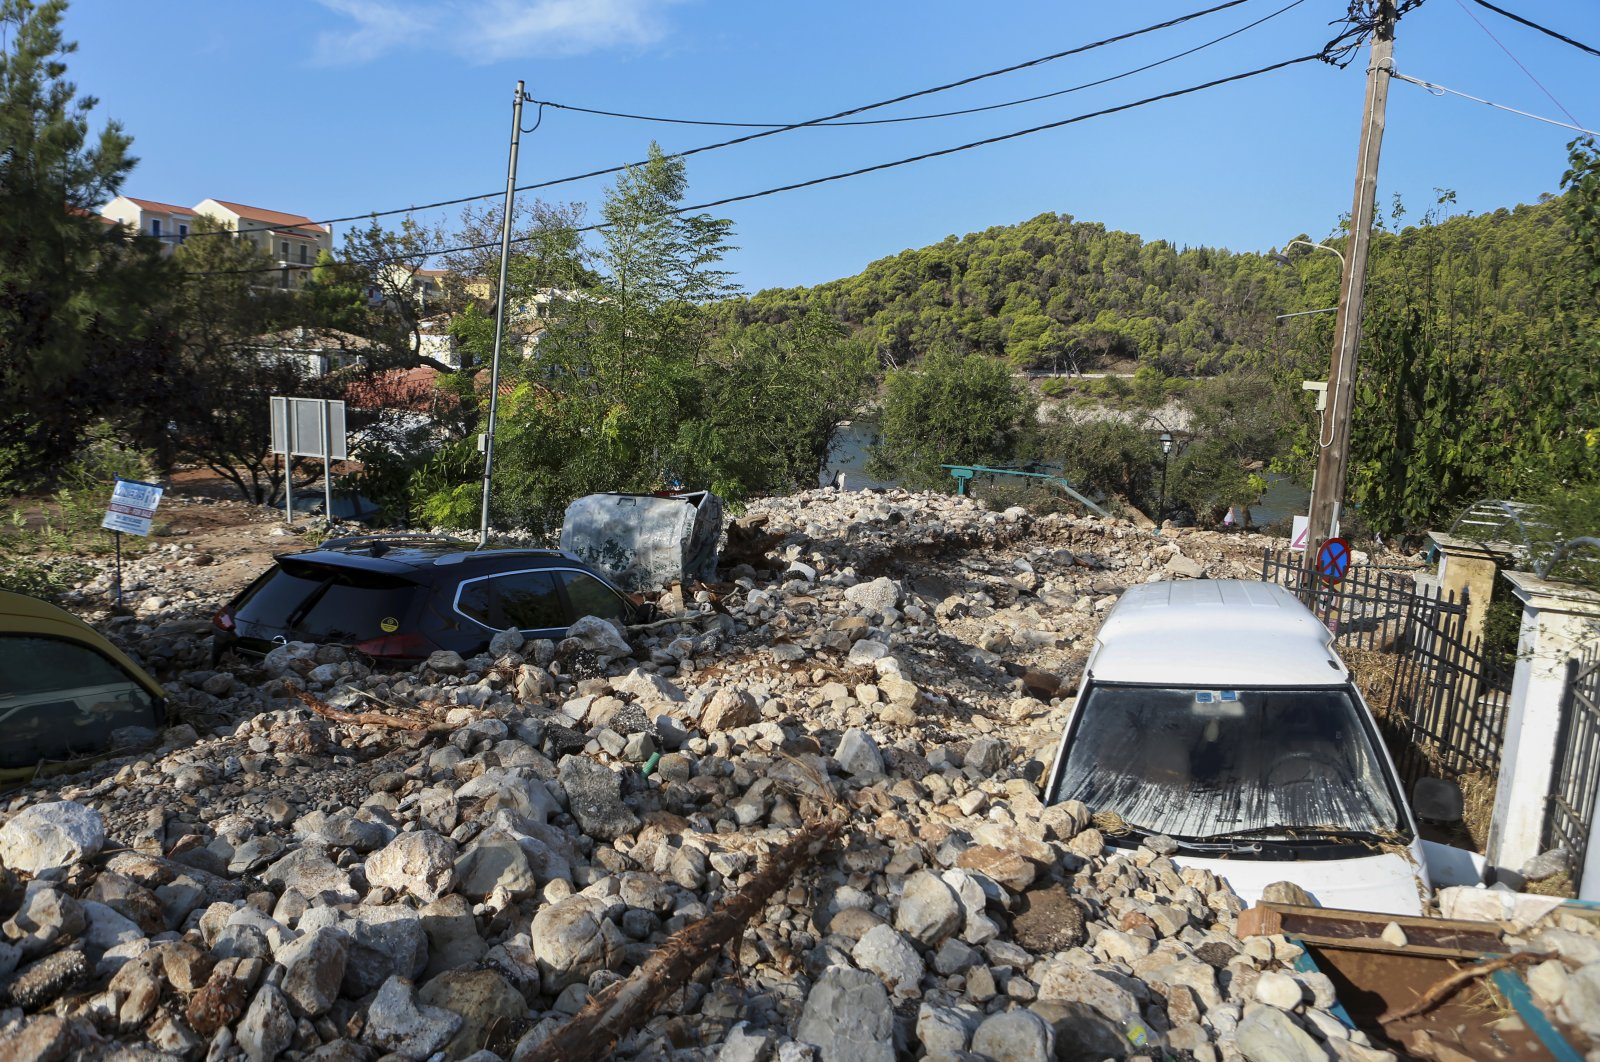 Vehicles are covered with rocks following a storm in the village of Assos, on the Ionian island of Kefalonia, western Greece, Sept. 20, 2020. (AP Photo)